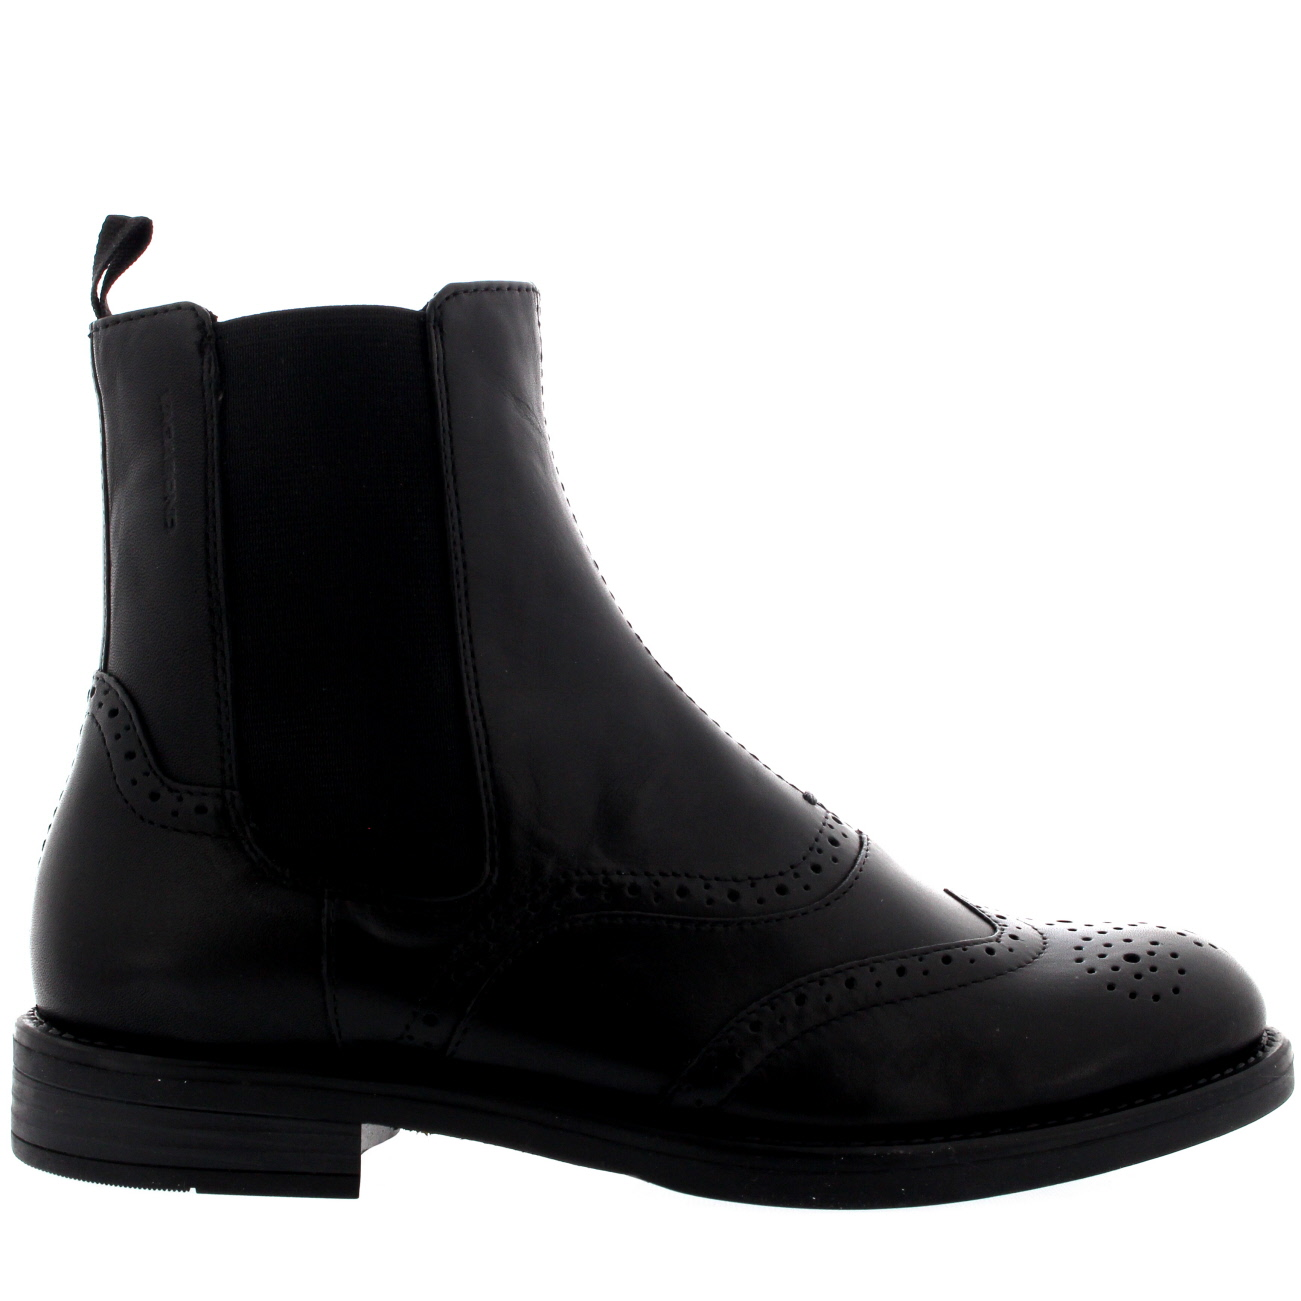 timeless design f3a29 a39e8 Details zu Ladies Vagabond Amina Office Leather Brogue Smart Ankle Chelsea  Boots All Sizes